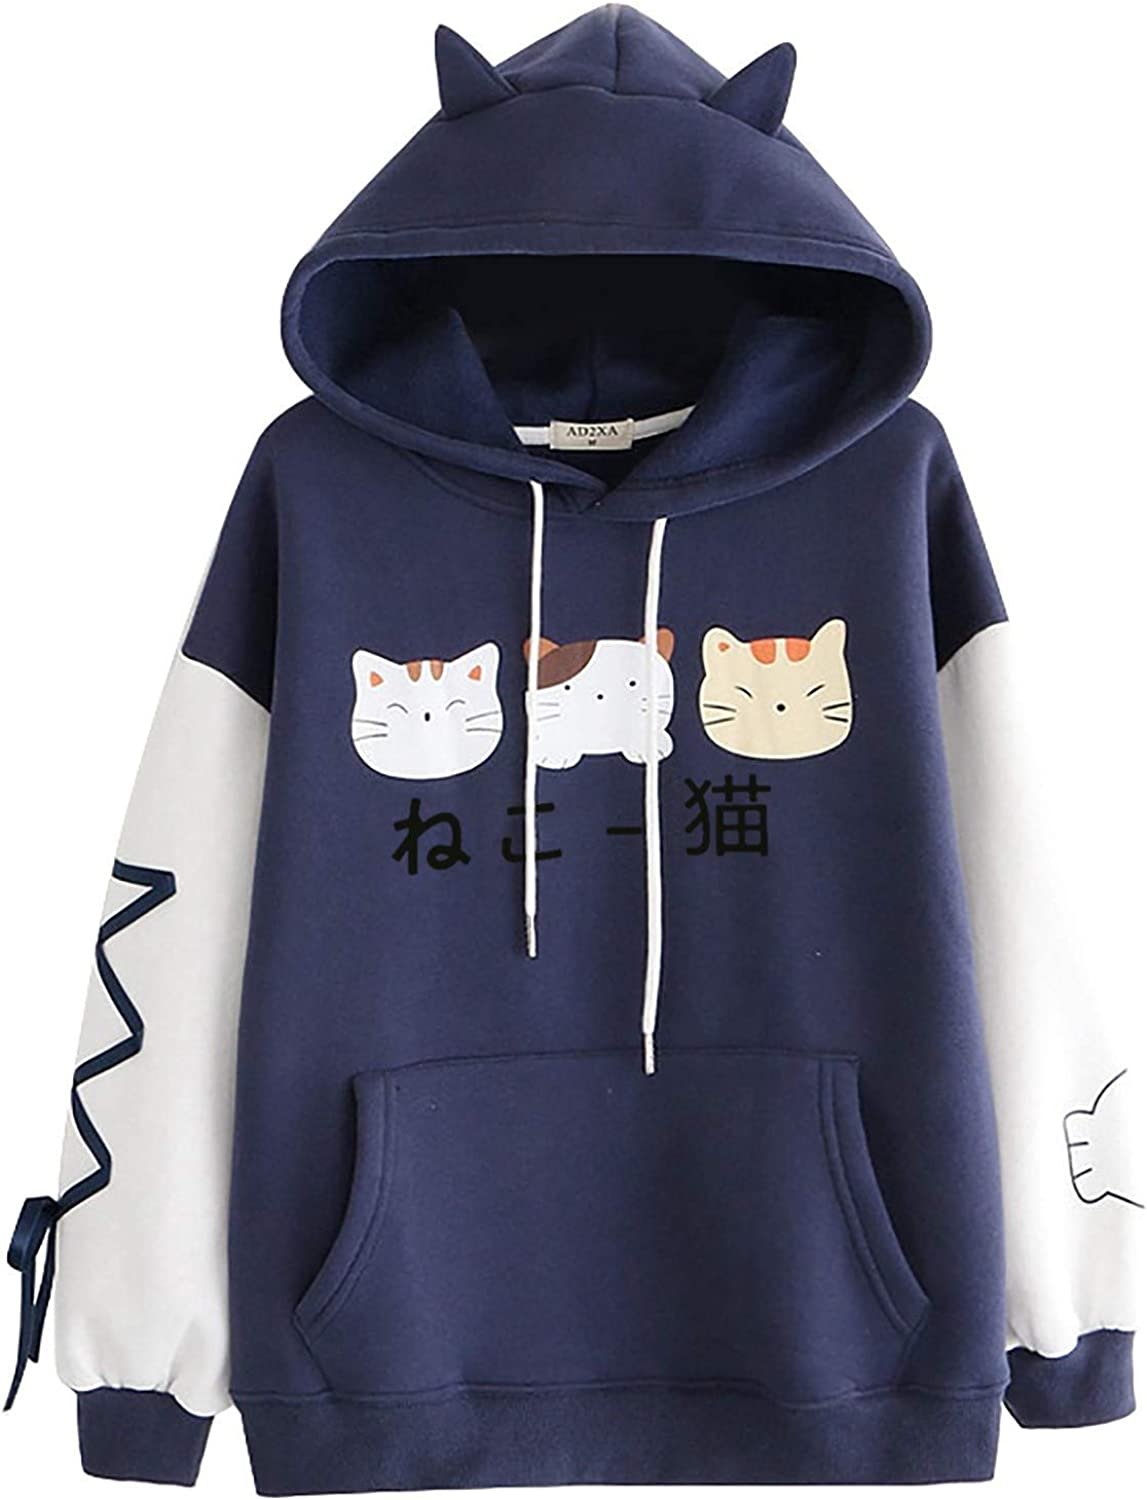 Women Cat Cute Printed Cotton Hooded Pullover Long Sleeve Tops Blouse Fashion Sweatshirt